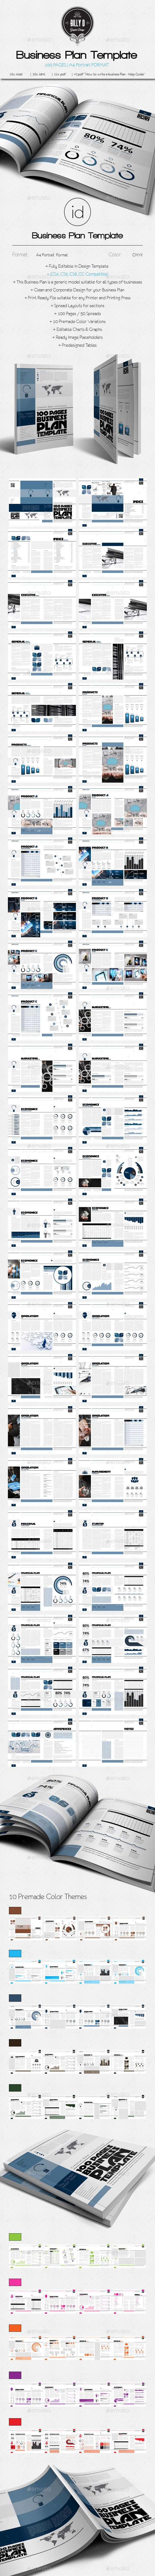 GraphicRiver 100 Pages Business Plan Template A4 v.1 9675811